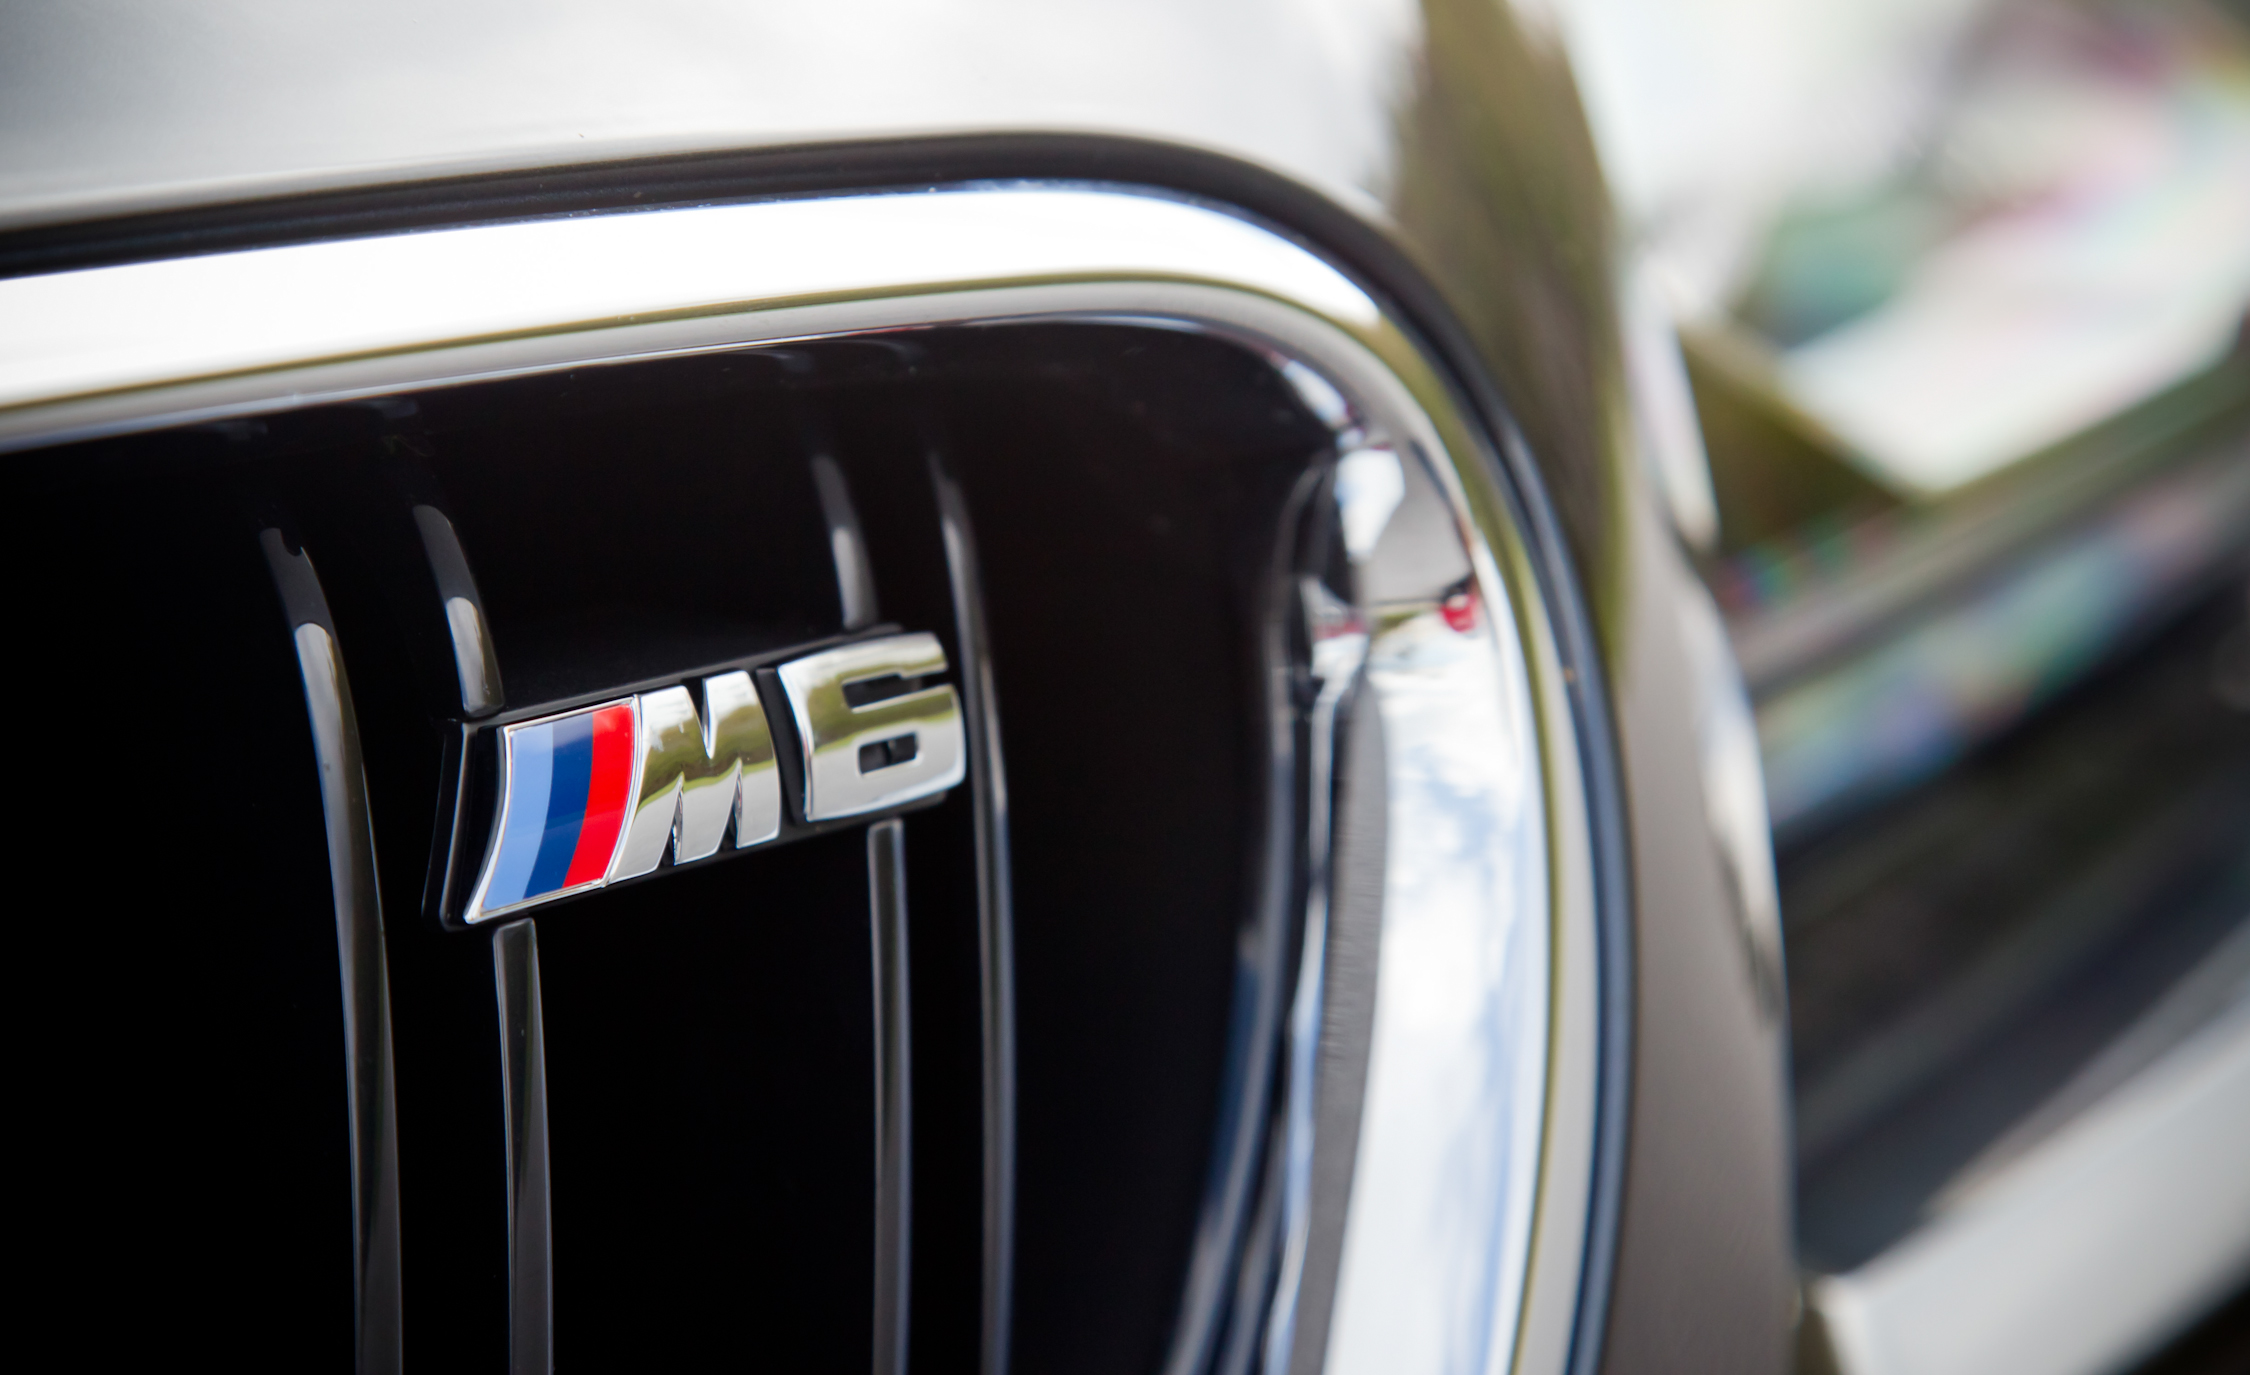 2012 BMW M6 Convertible Exterior View Badge Front (Photo 4 of 30)